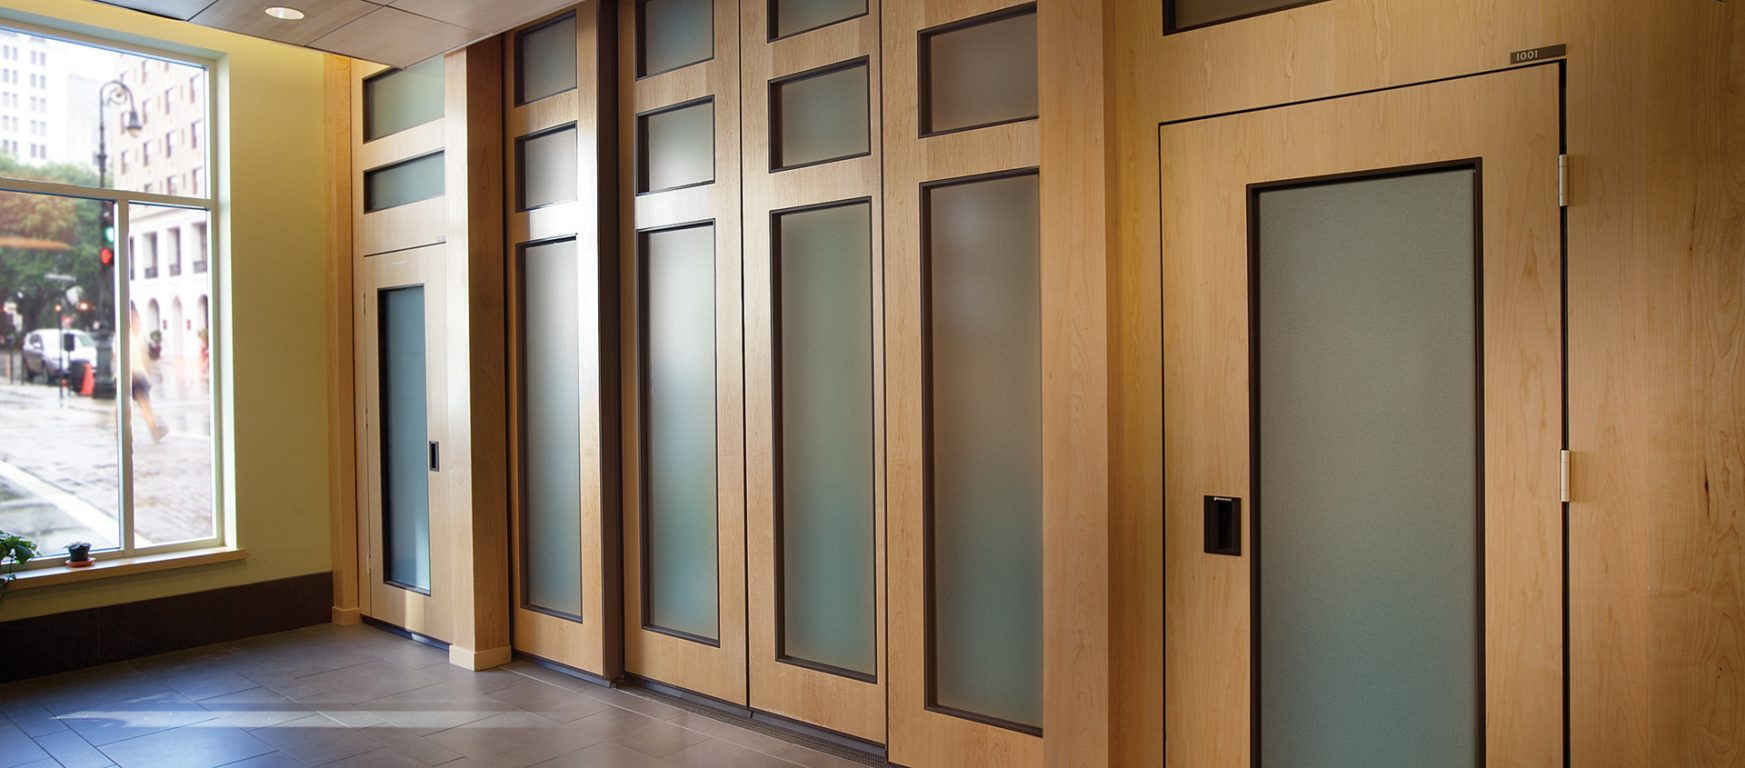 modernfold acousti-seal custom panels & ACOUSTI-SEAL CUSTOM PANELS - Operable Partitions and Glass Wall ... pezcame.com